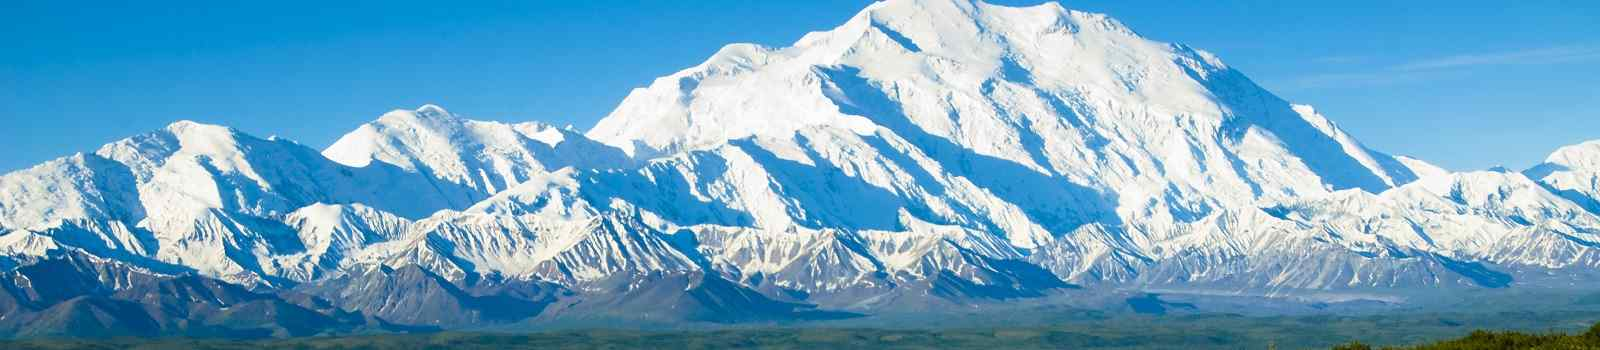 DENALI Denali from near Wonder lake shutterstock 245044285